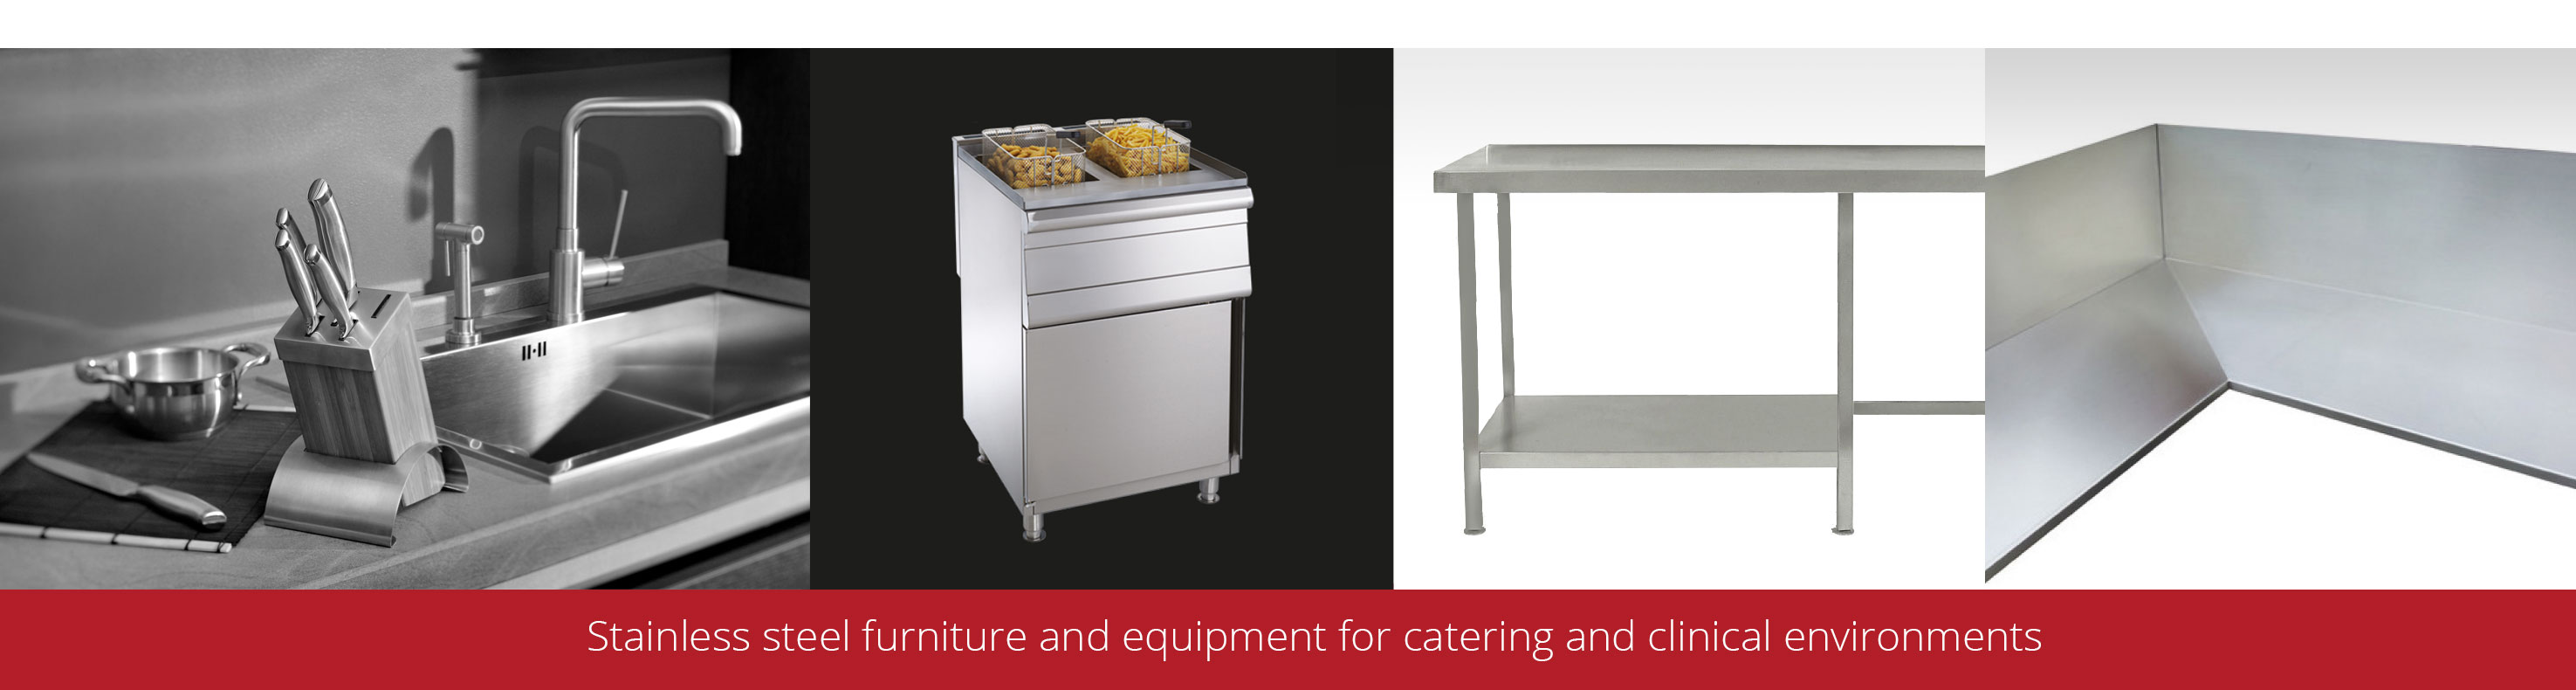 Commercial Catering & Clinical Equipment | Parry